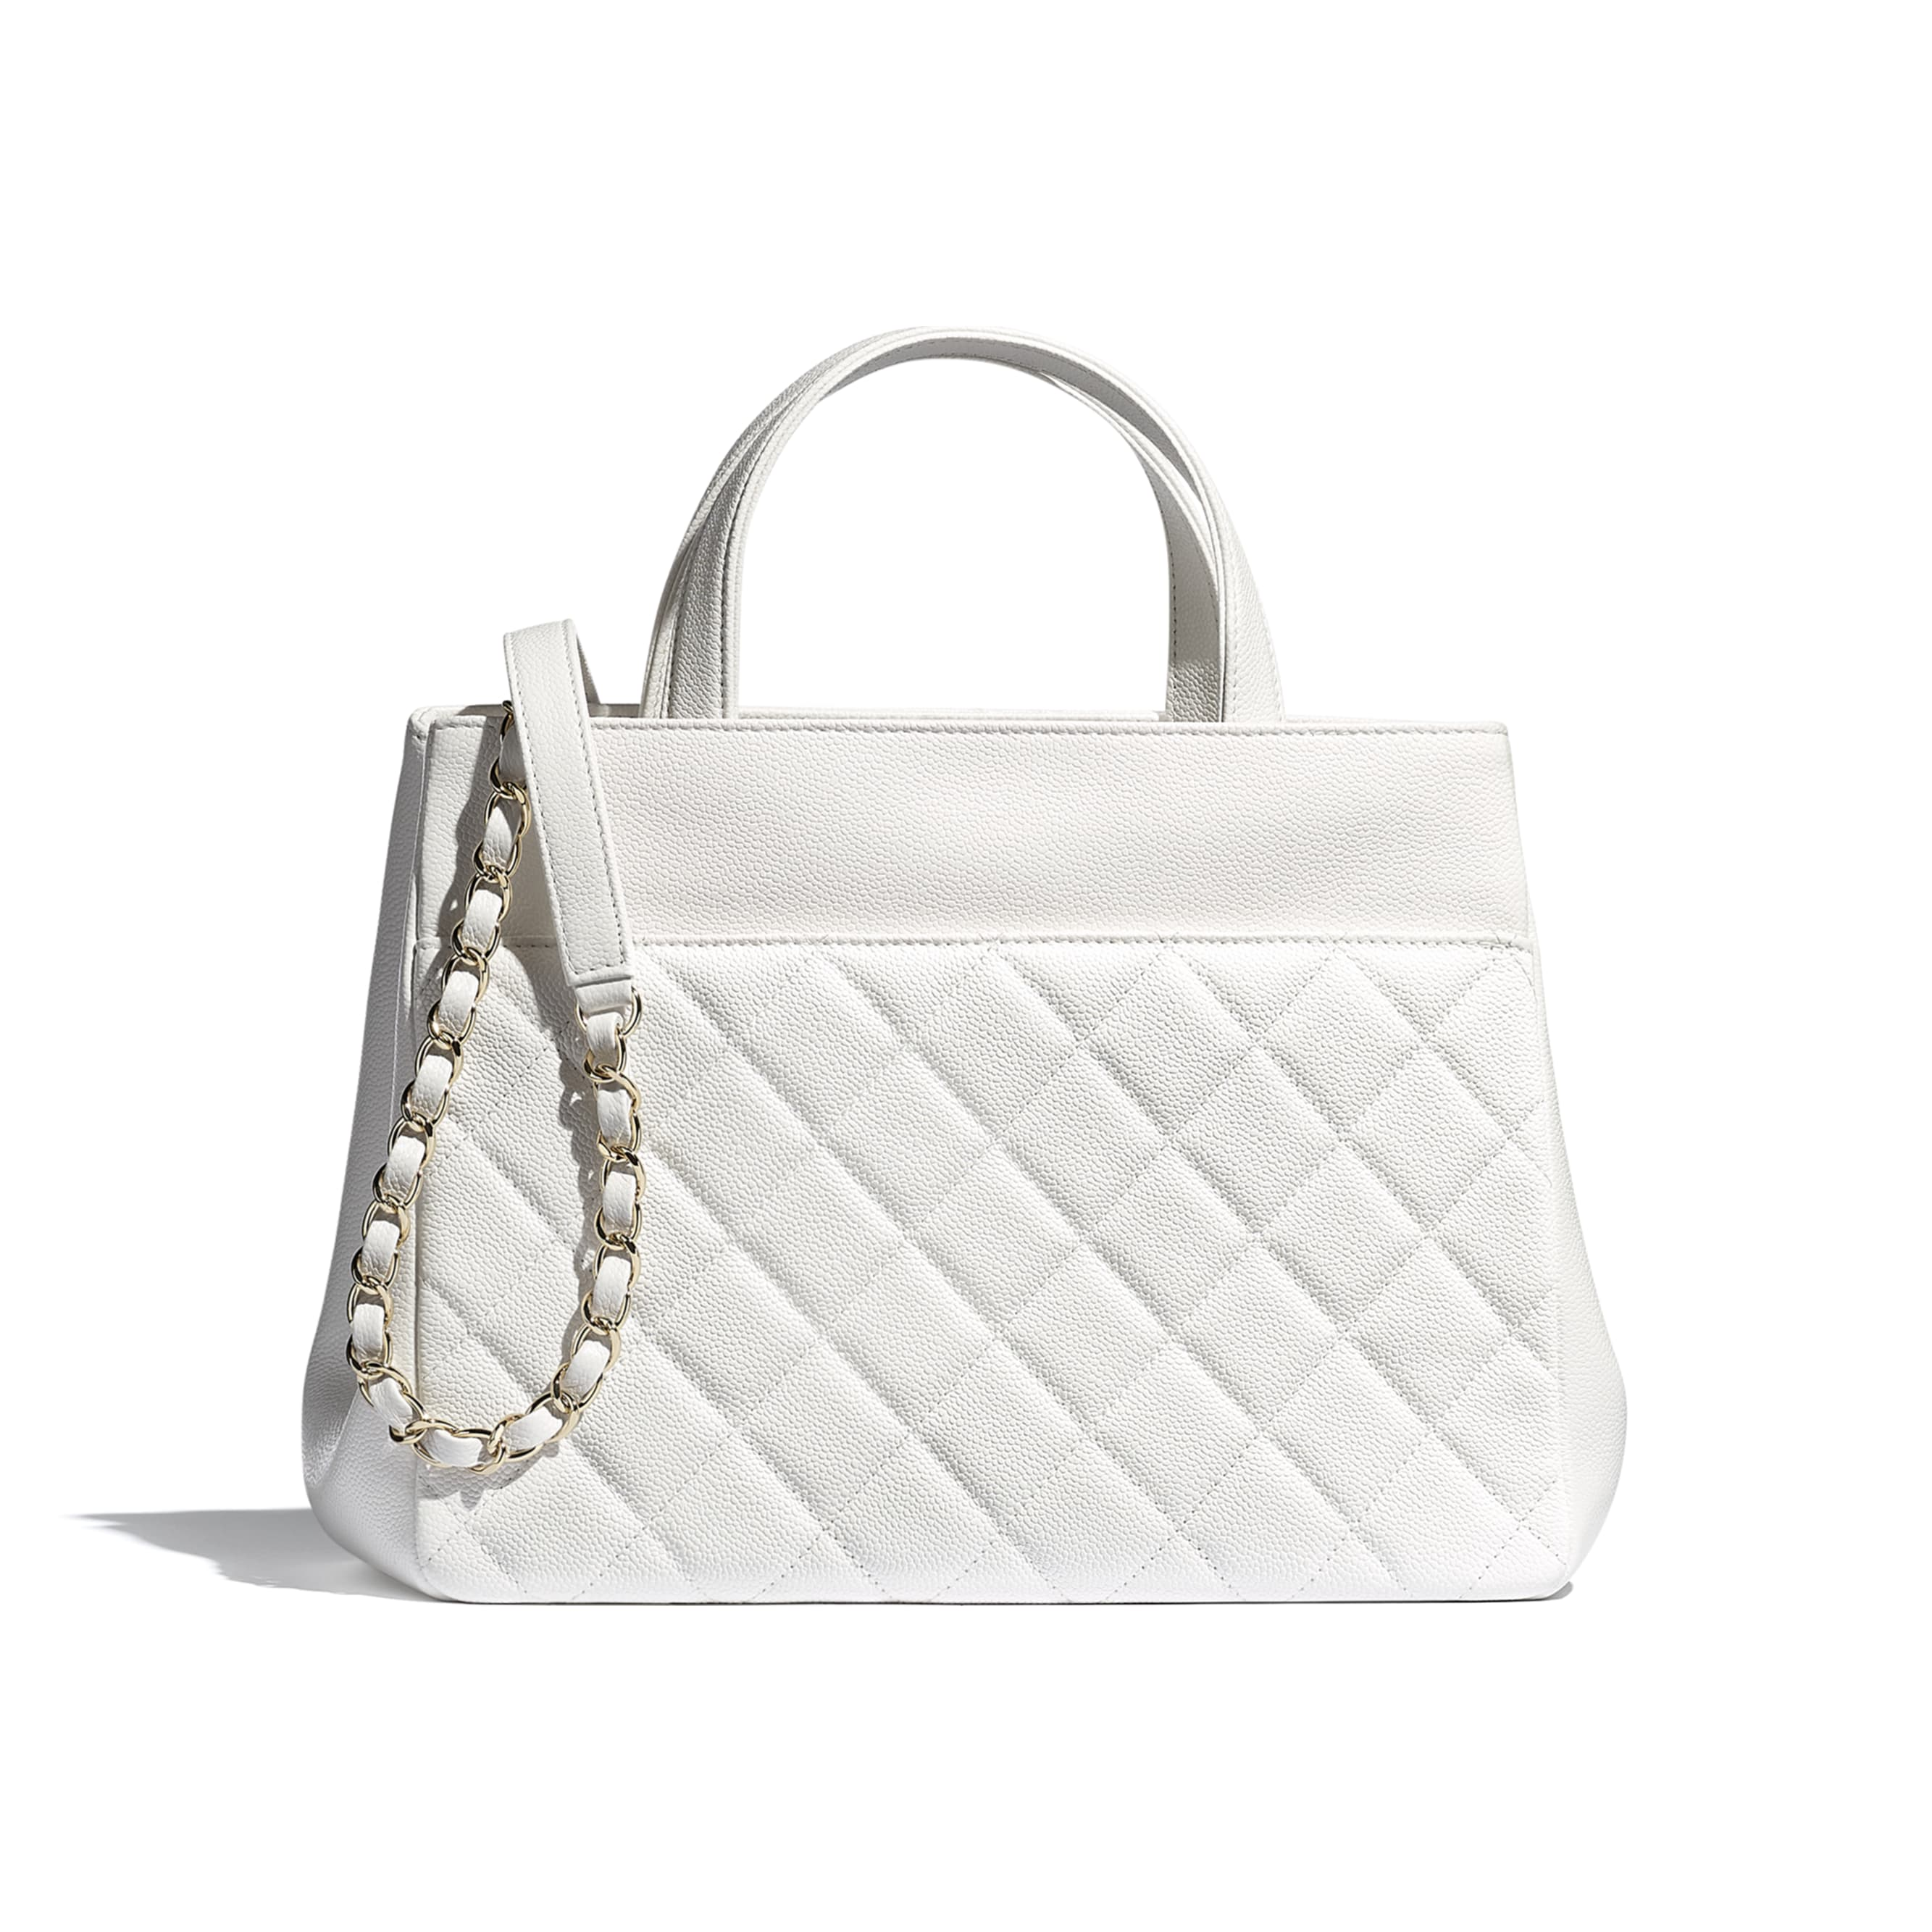 Small Tote - White - Grained Calfskin & Gold-Tone Metal - CHANEL - Alternative view - see standard sized version